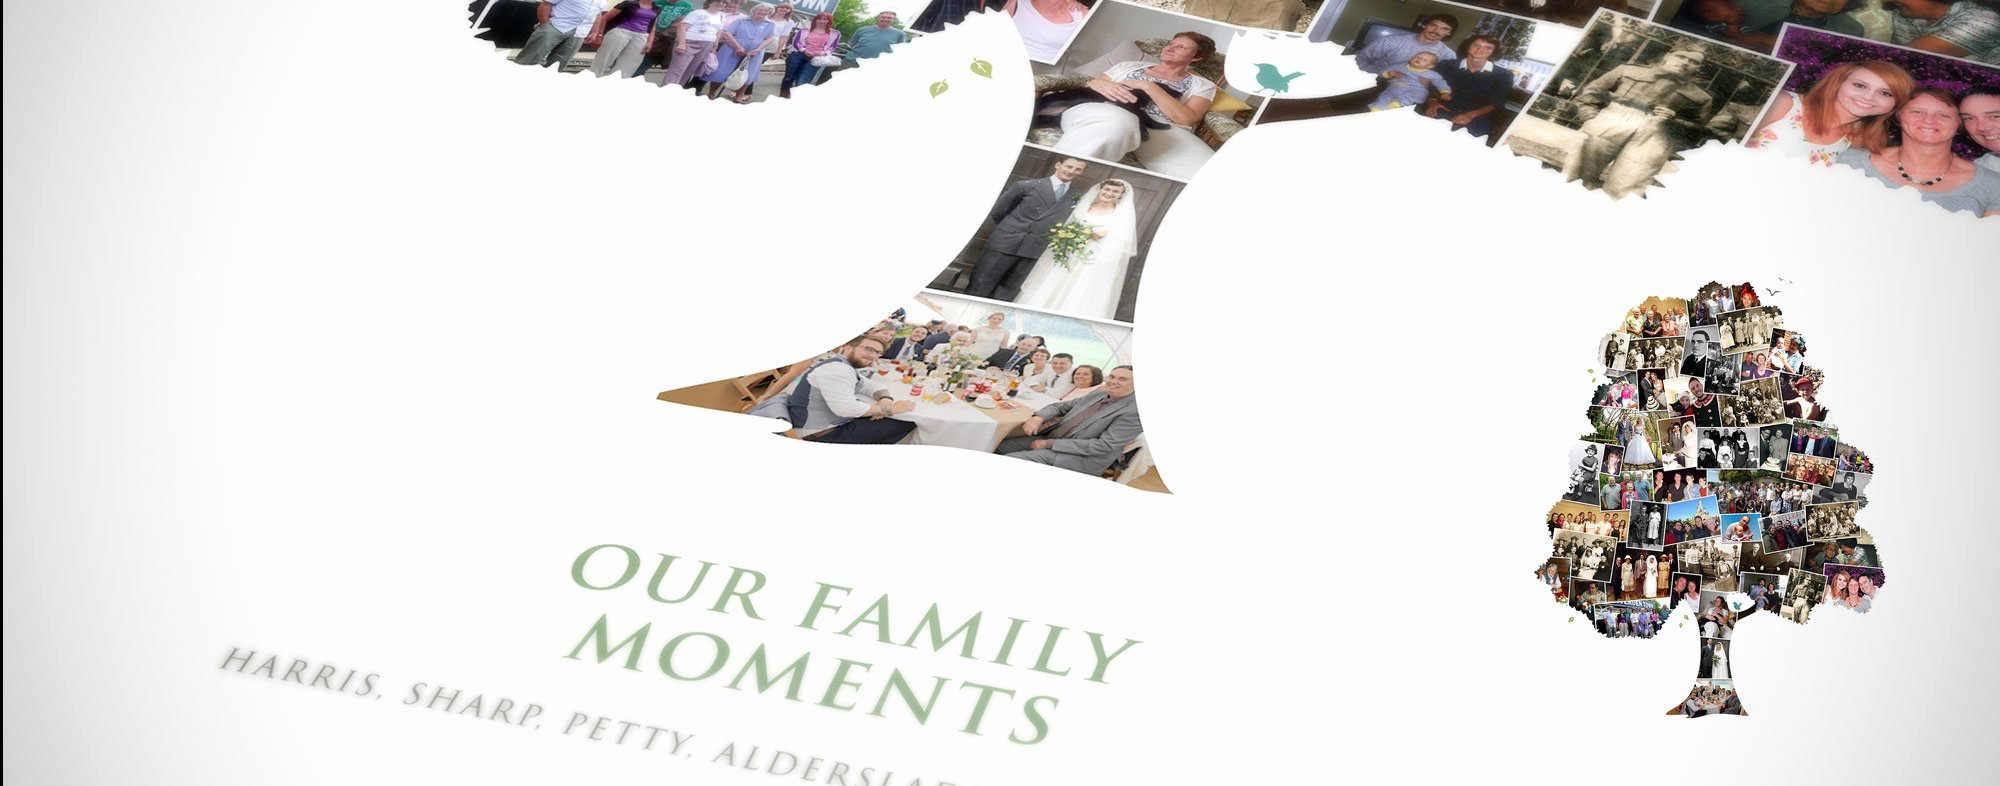 Family Tree Photo Collage Luxury Family Tree Collage Wall Art Sharing Those Moments